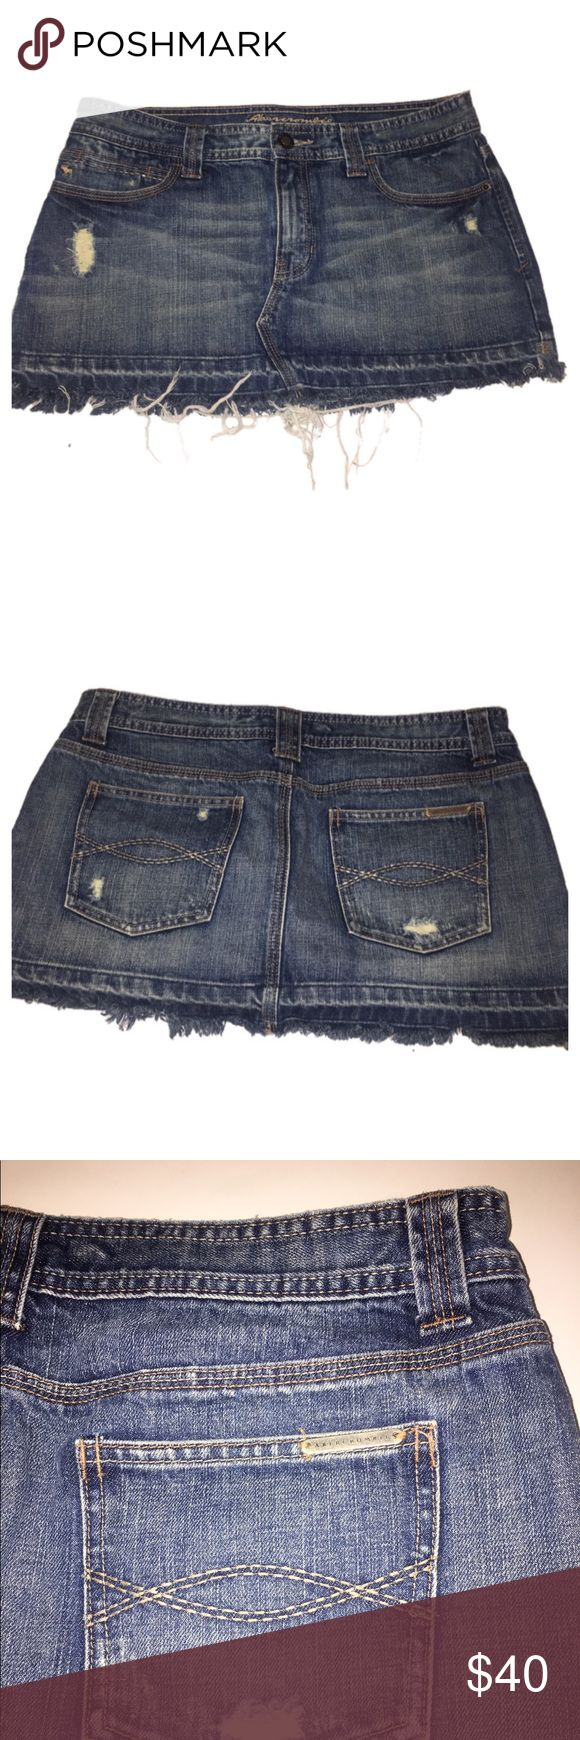 """Abercrombie and Fitch skirt Perfect condition denim skirt , 17"""" waist laying flat, 12-13"""" length . Frayed hem, distressed spots. Size 8. Abercrombie & Fitch Skirts Mini"""